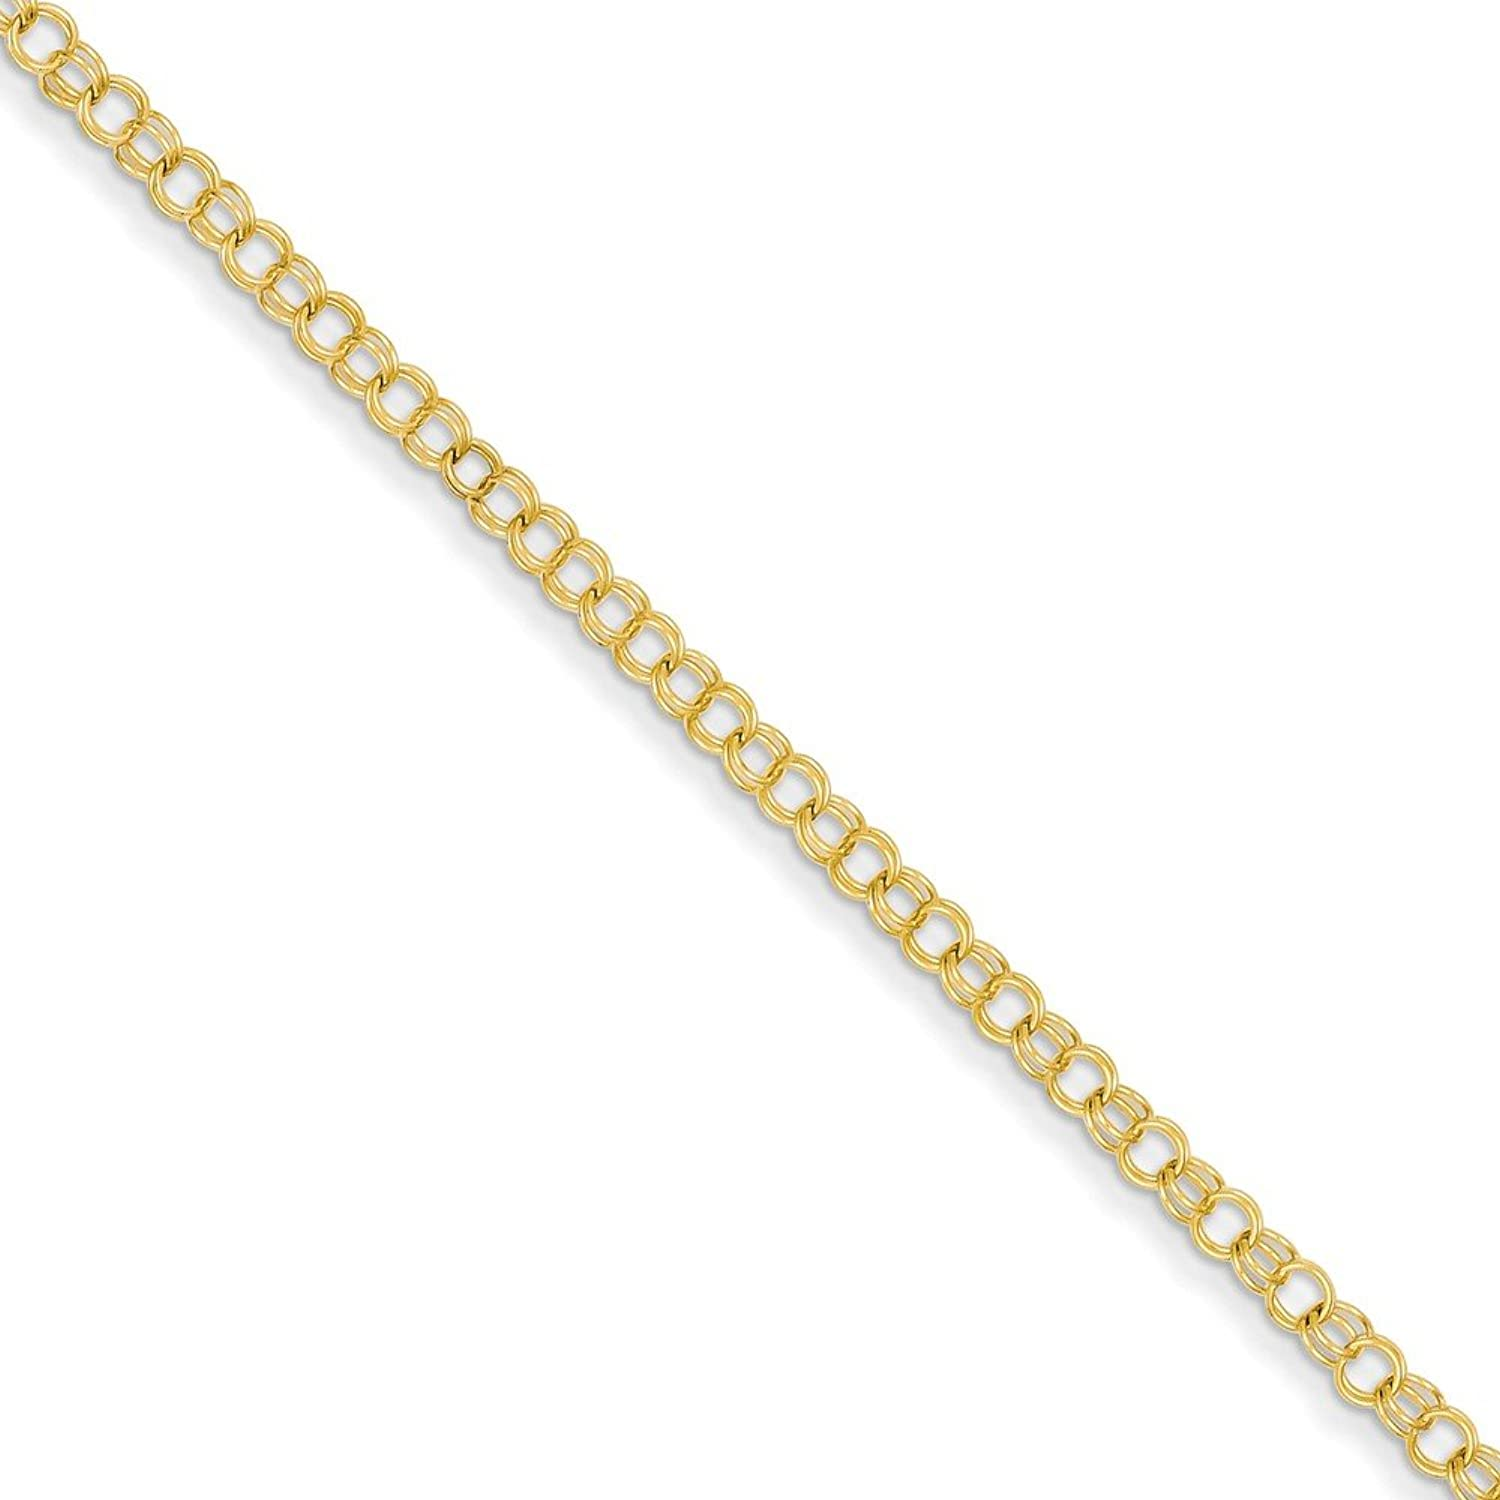 Beautiful Yellow gold 14K Yellowgold 14k 3.5mm Solid Double Link Charm Bracelet